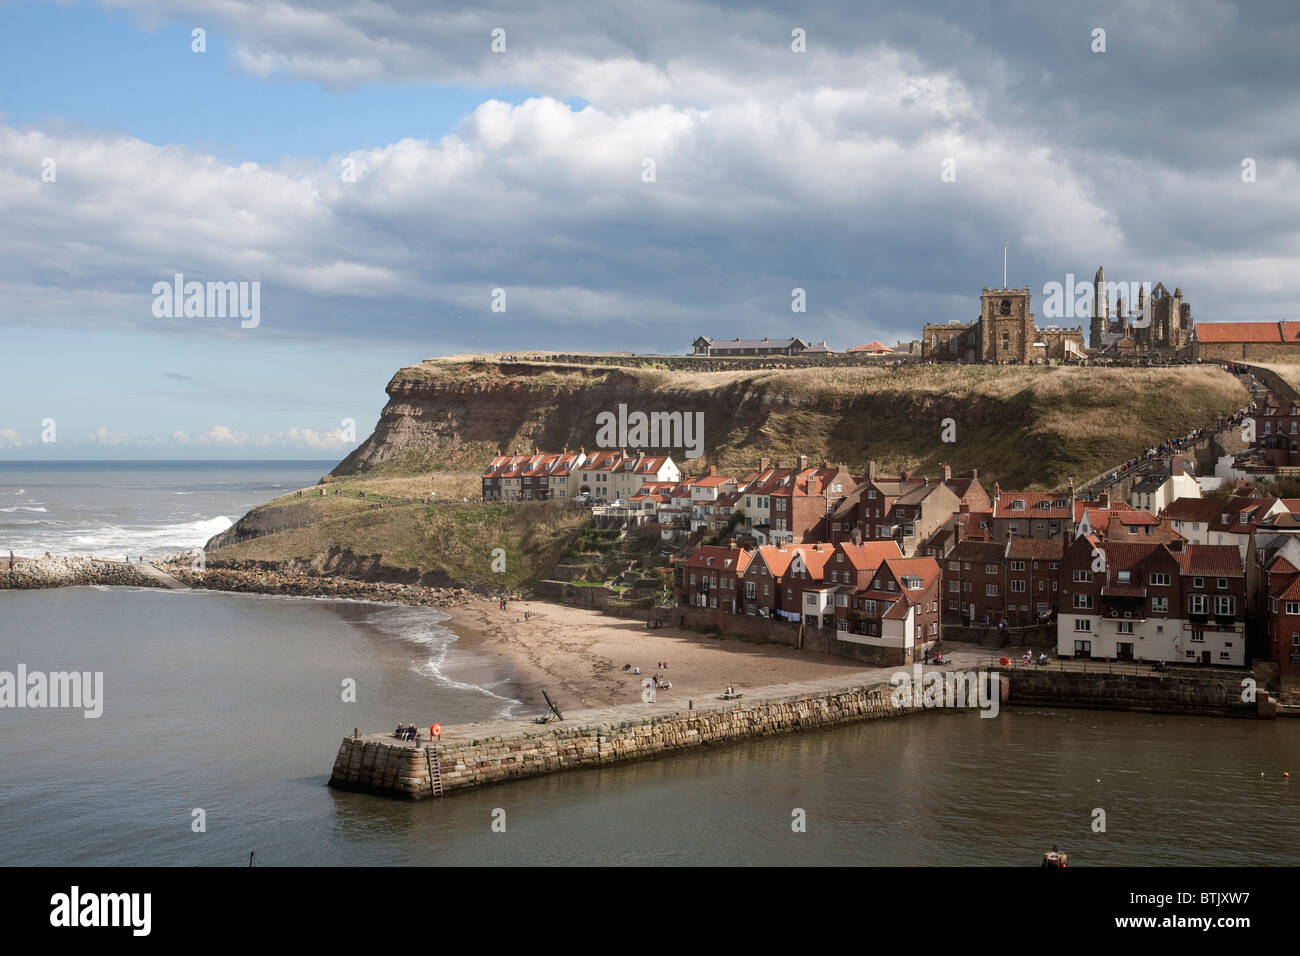 Whitby situated at the mouth of the River Esk in the Scarborough borough of North Yorkshire. Photo:Jeff Gilbert - Stock Image